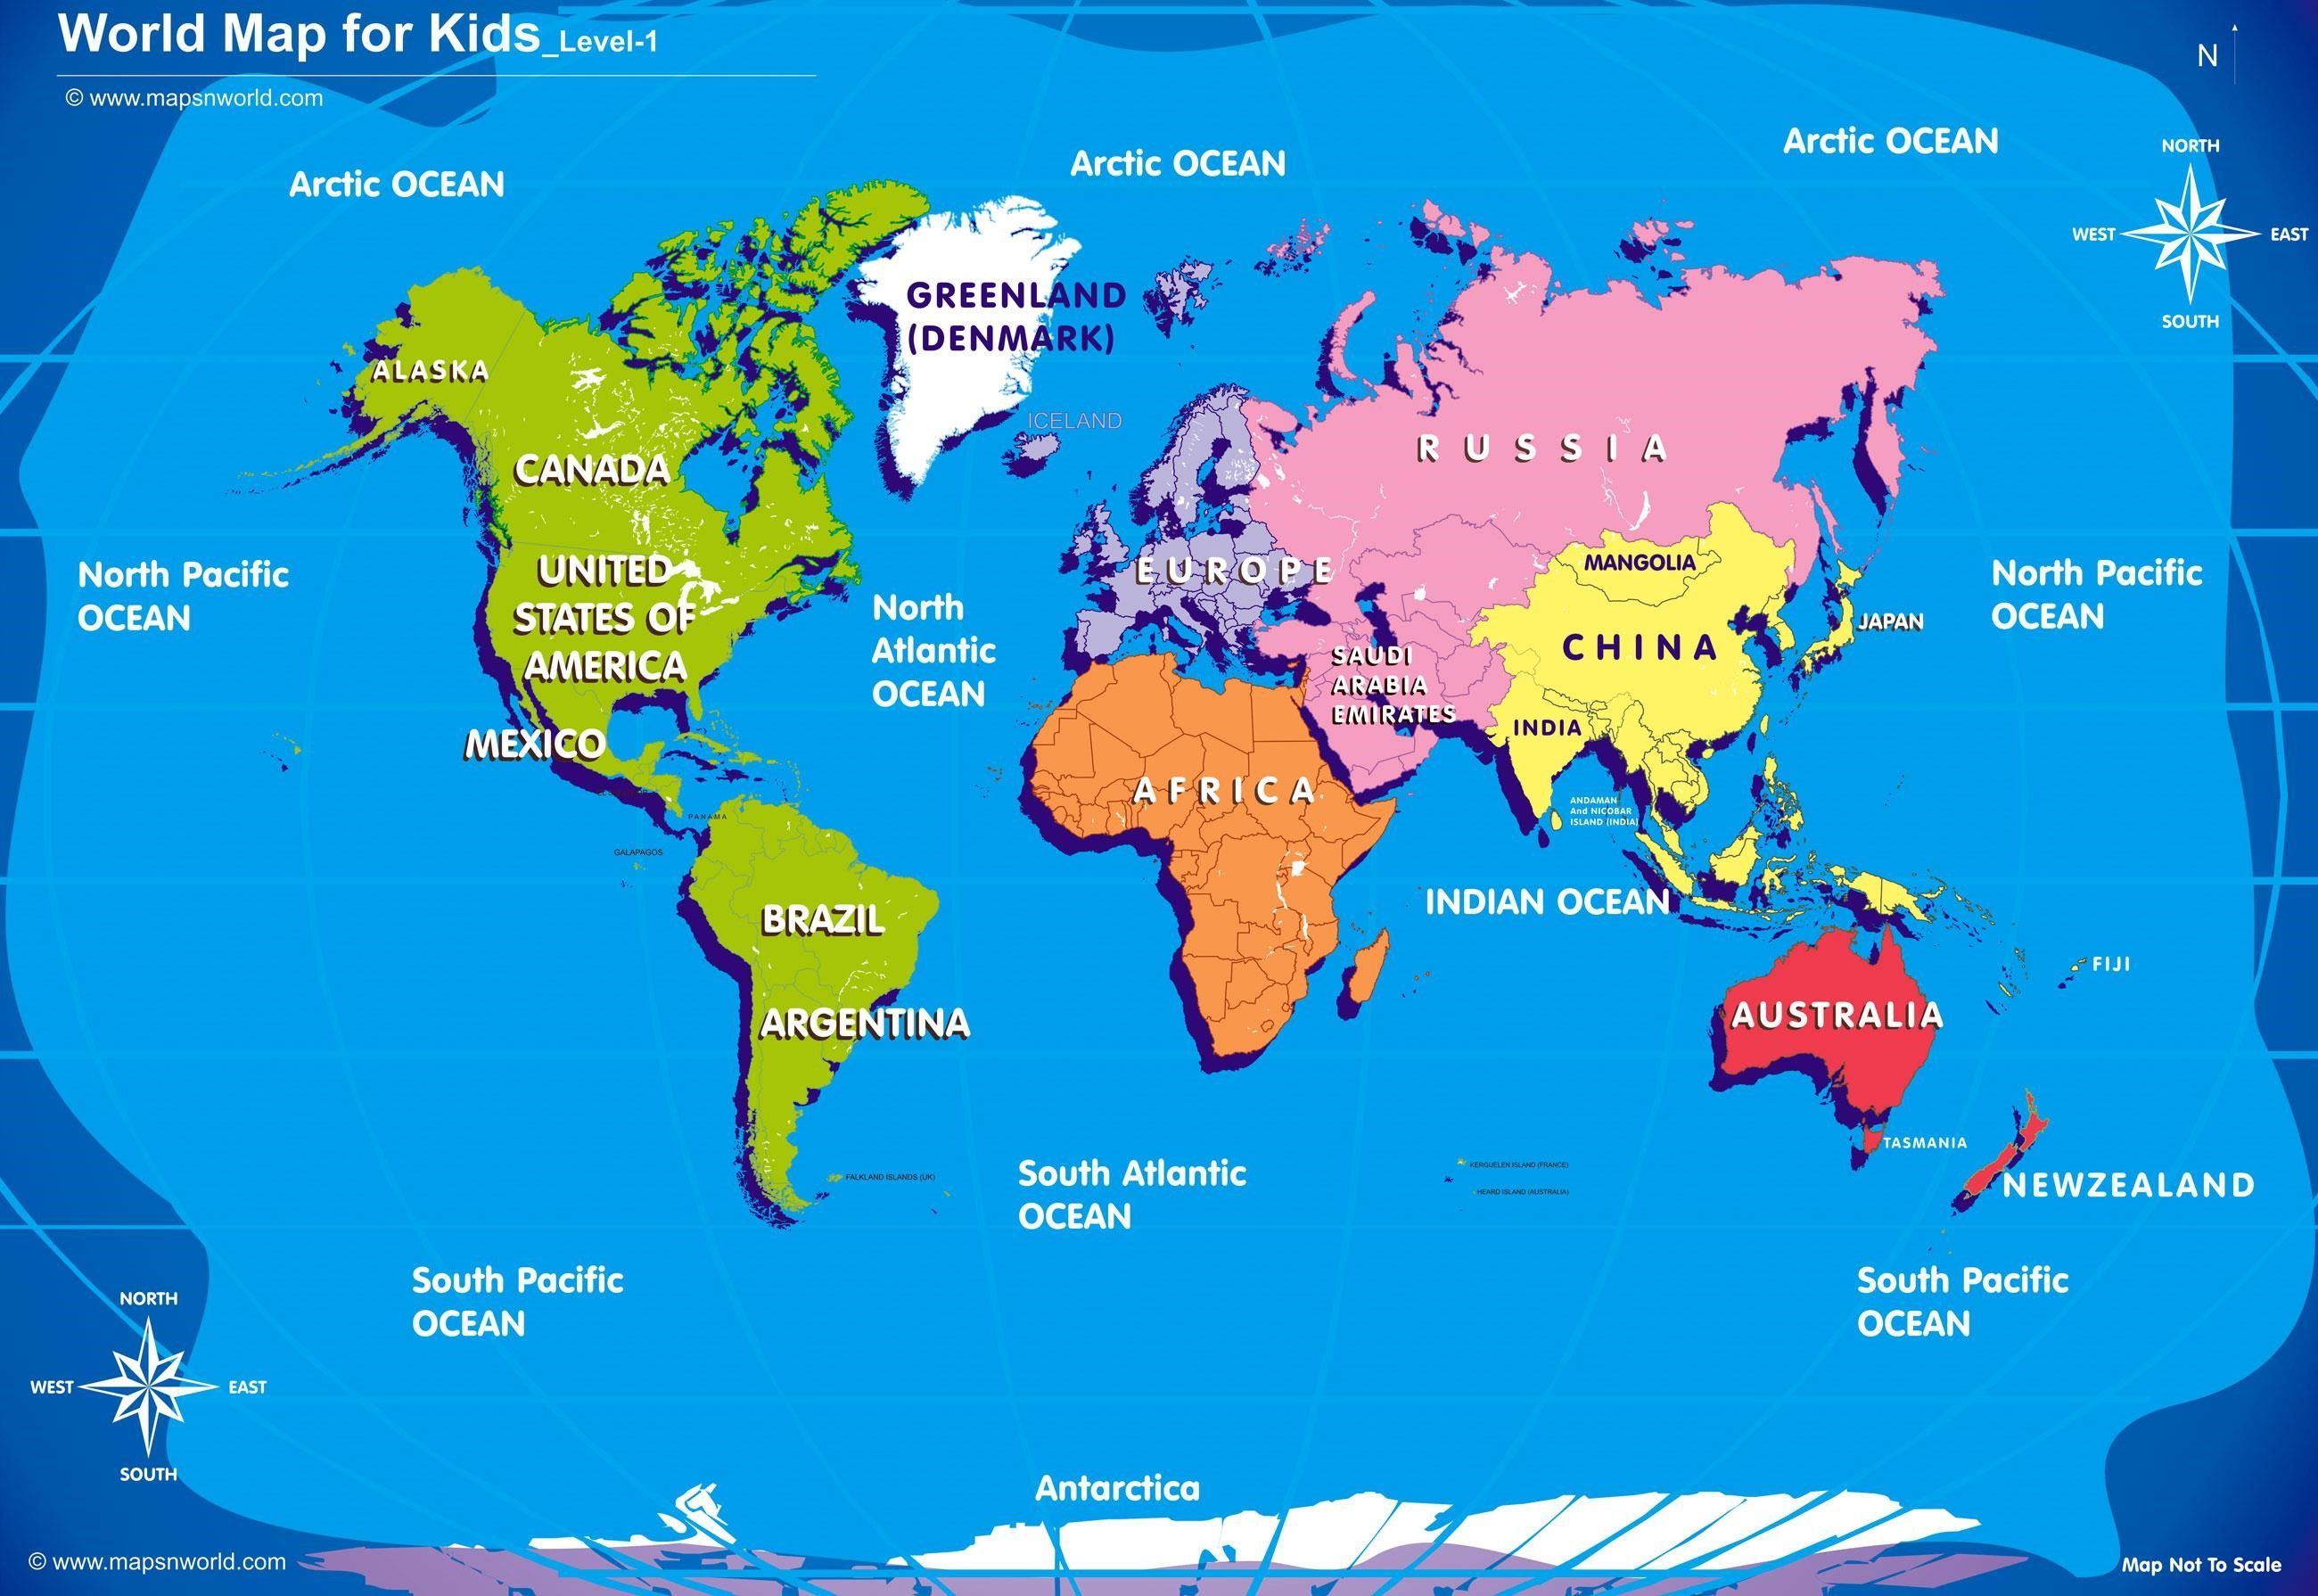 World map for kids big size w r ibackgroundzcom at home preschool world map for kids big size w r ibackgroundzcom gumiabroncs Choice Image